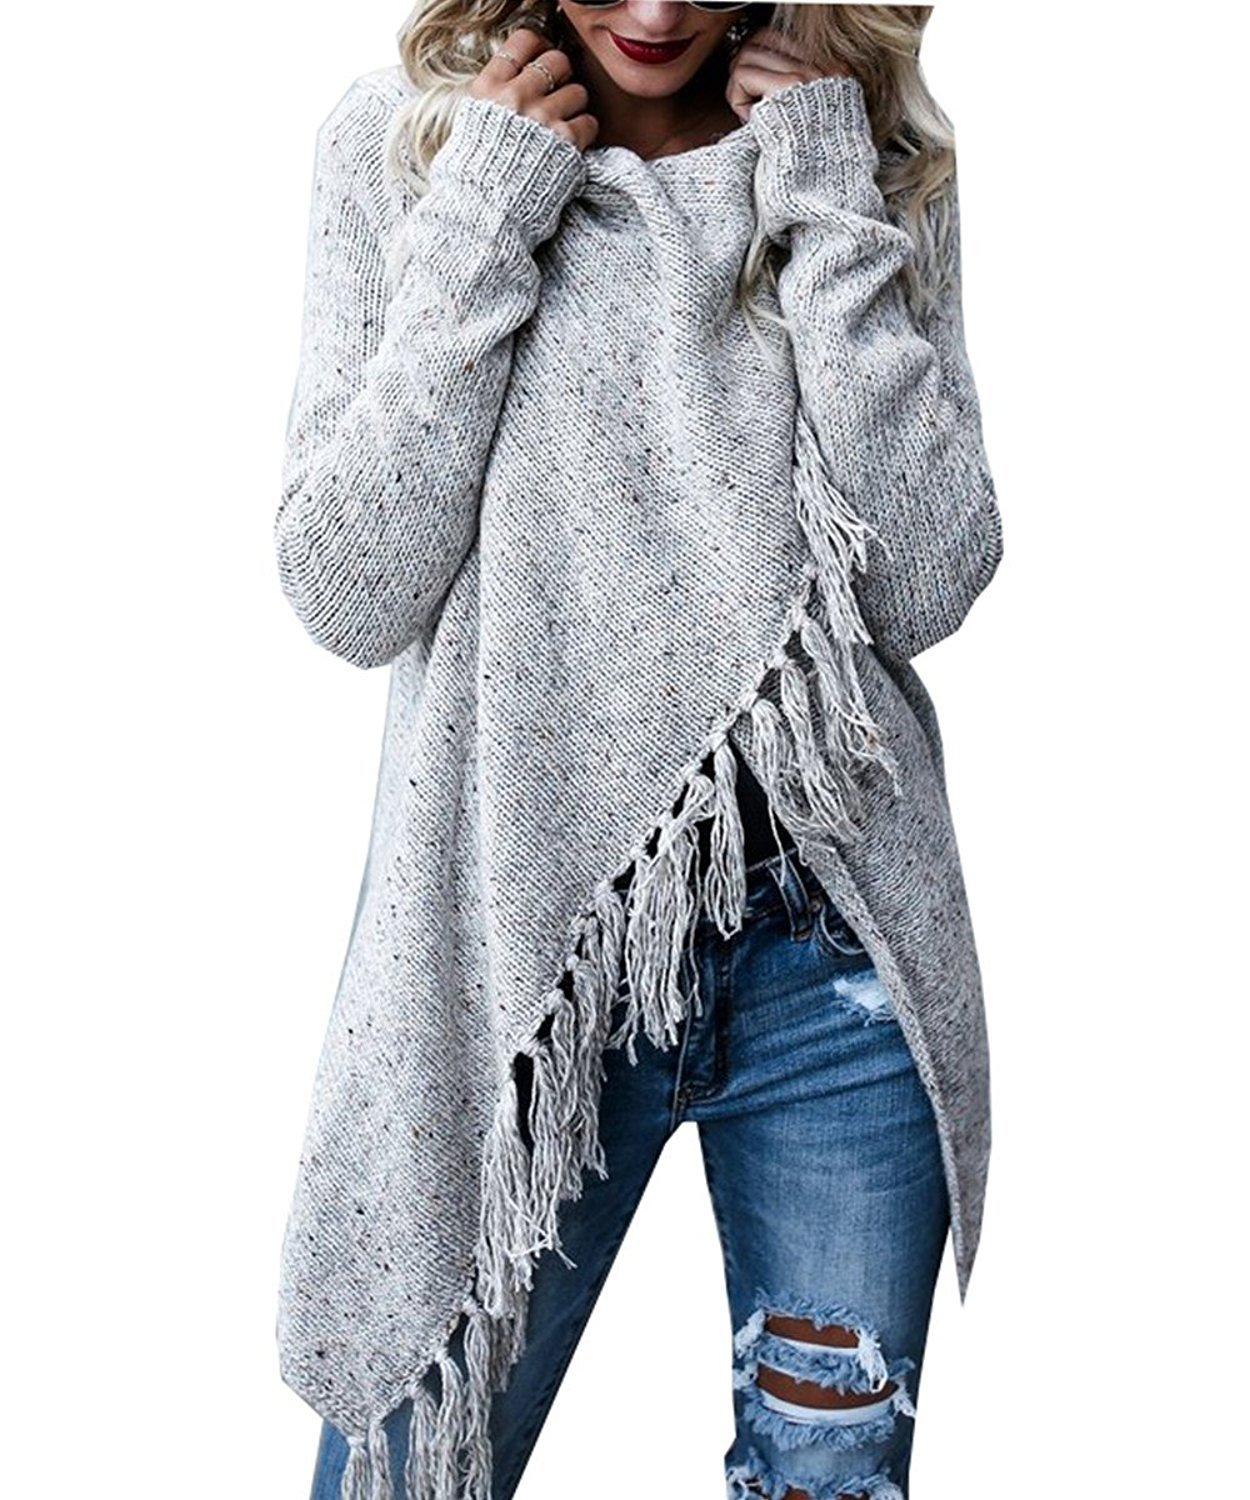 Fantastic Zone Womens Long Sleeve Speckled Fringe Open Front Cardigan Sweaters for Women, Small, Grey